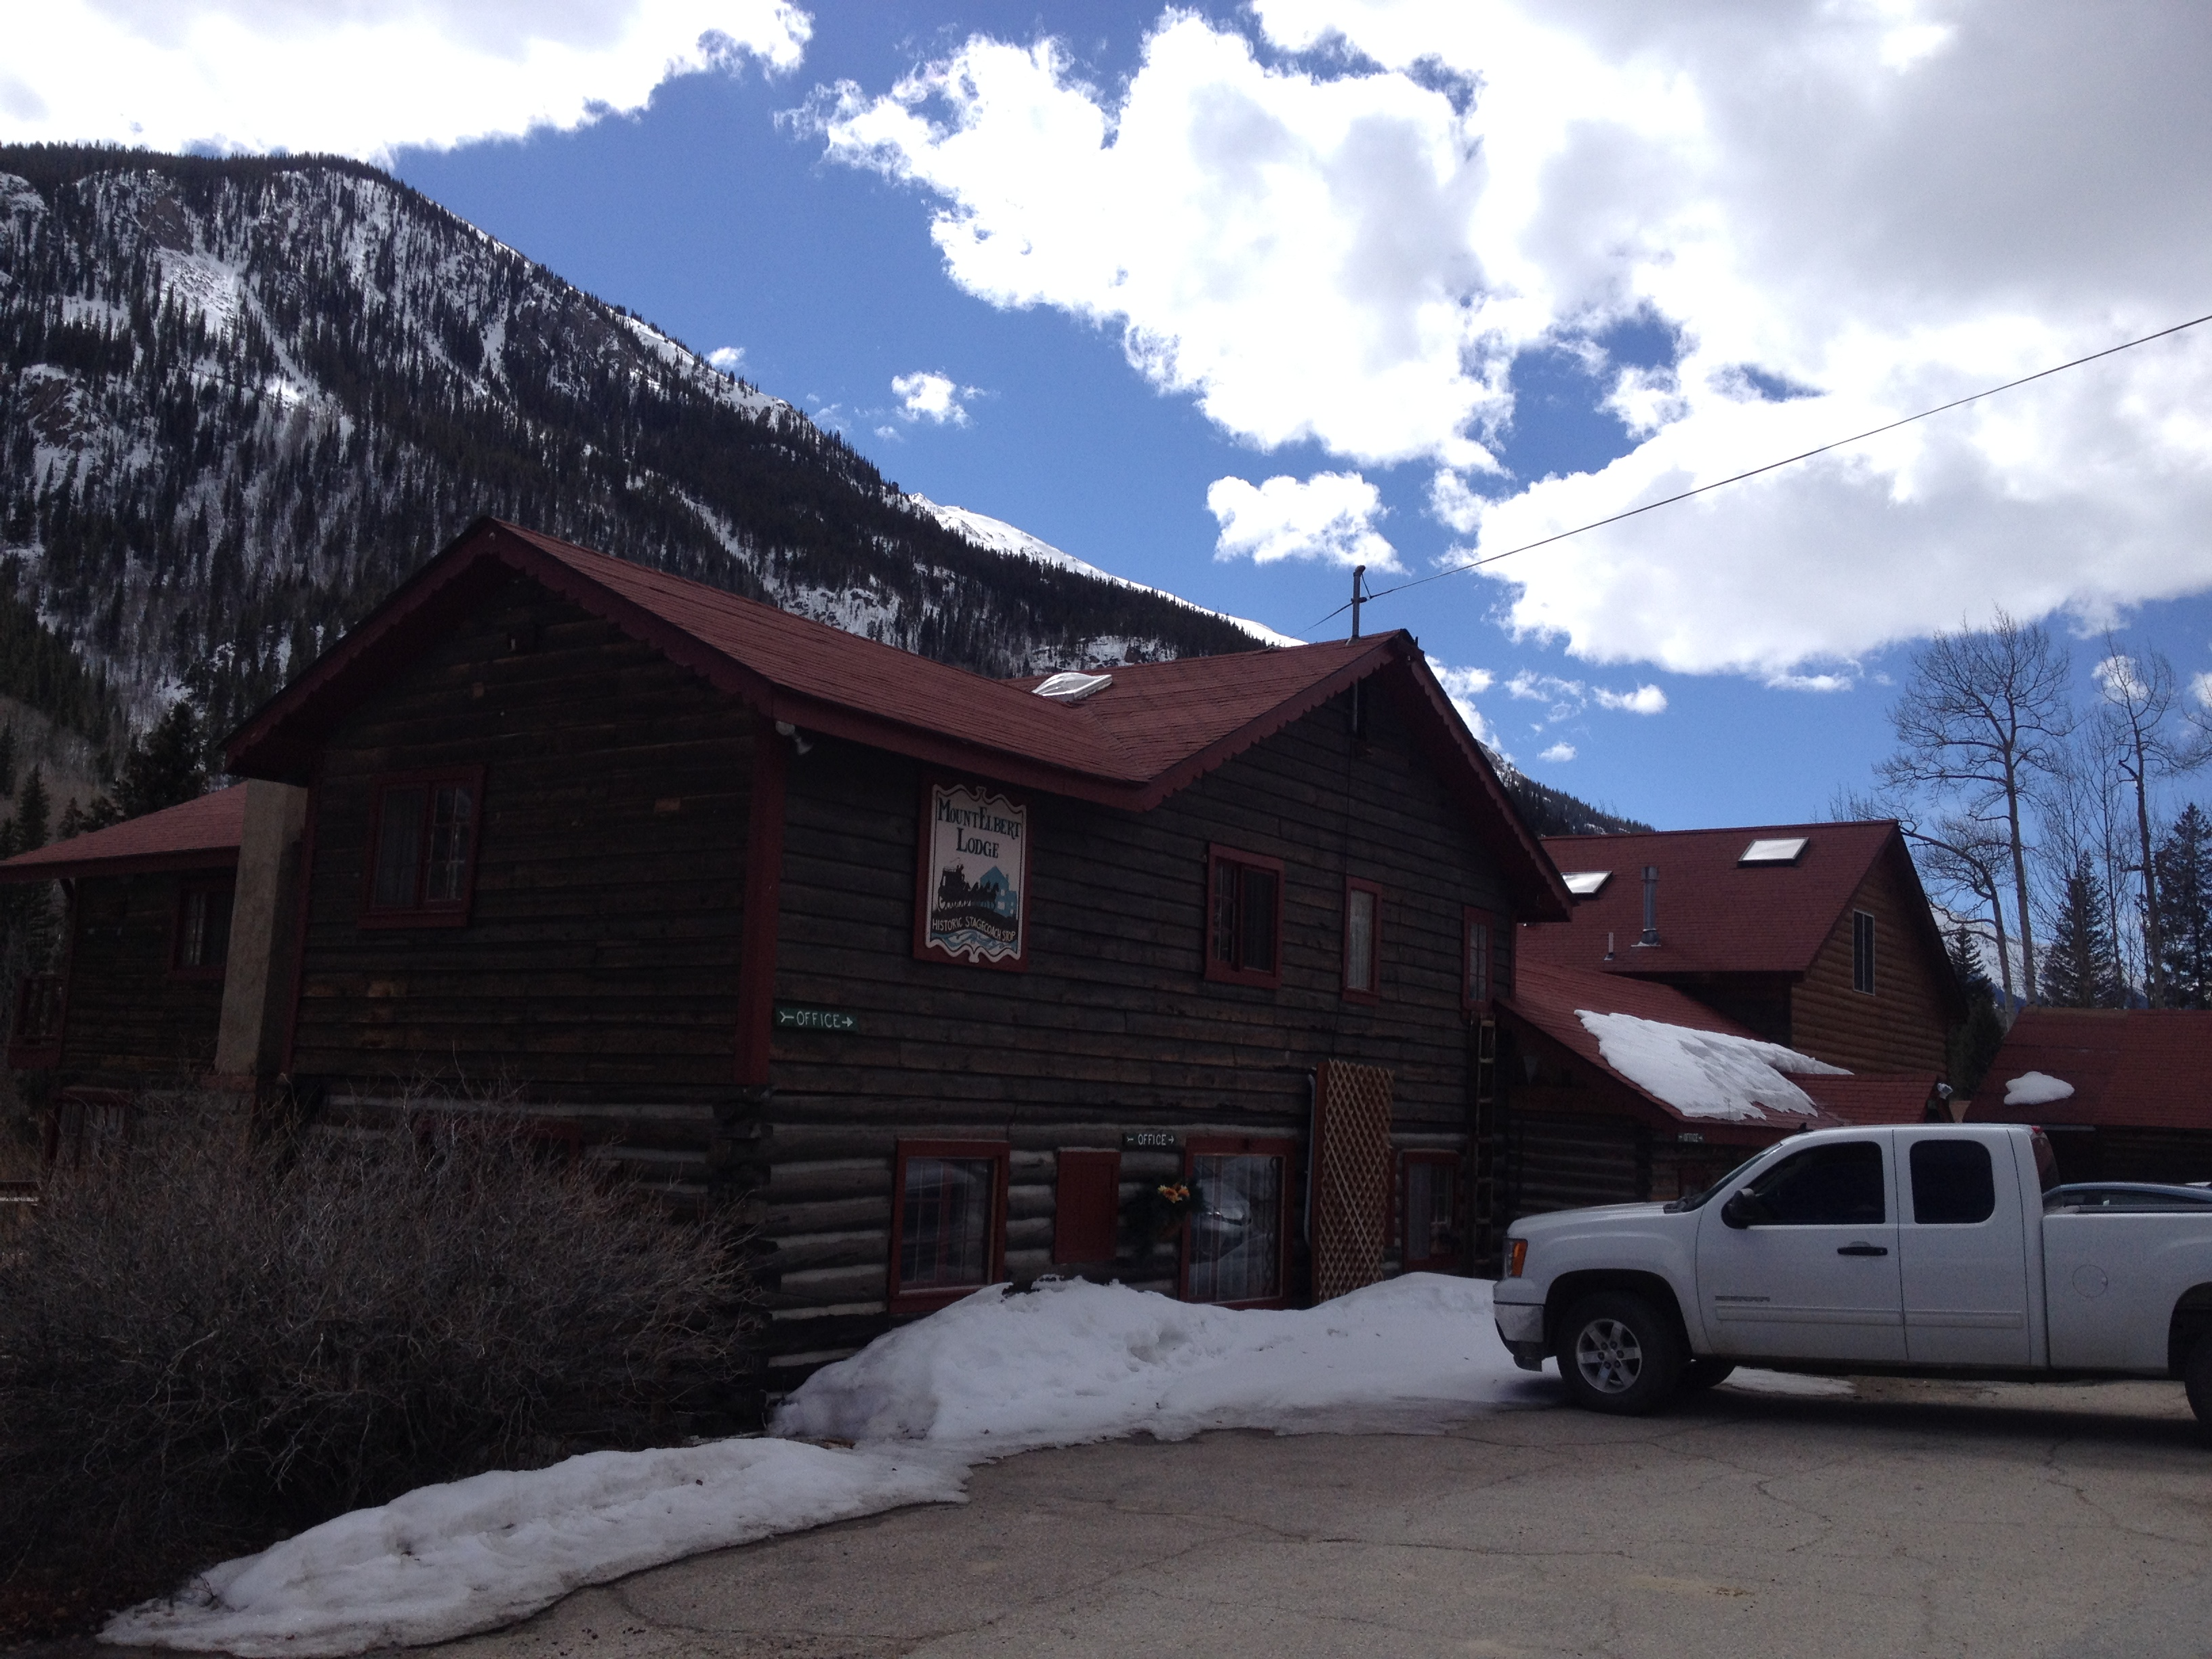 Mt Elbert Lodge - Twin Lakes, CO